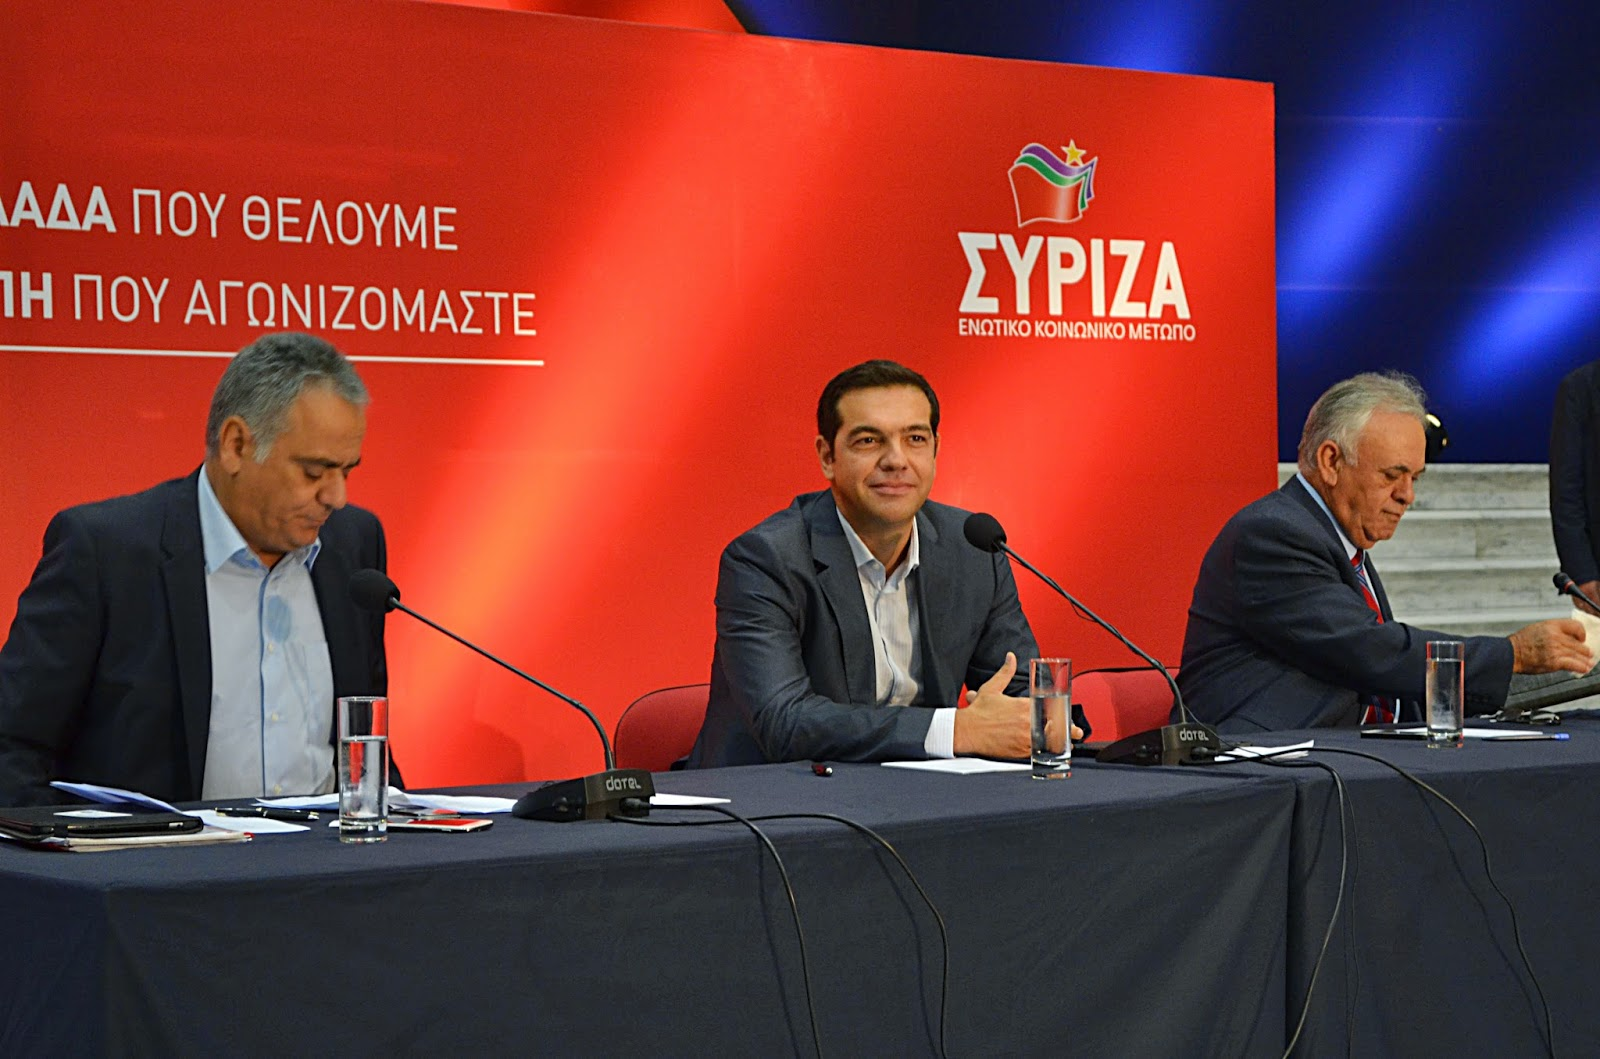 Alexis Tsipras Calls for Immediate Elections